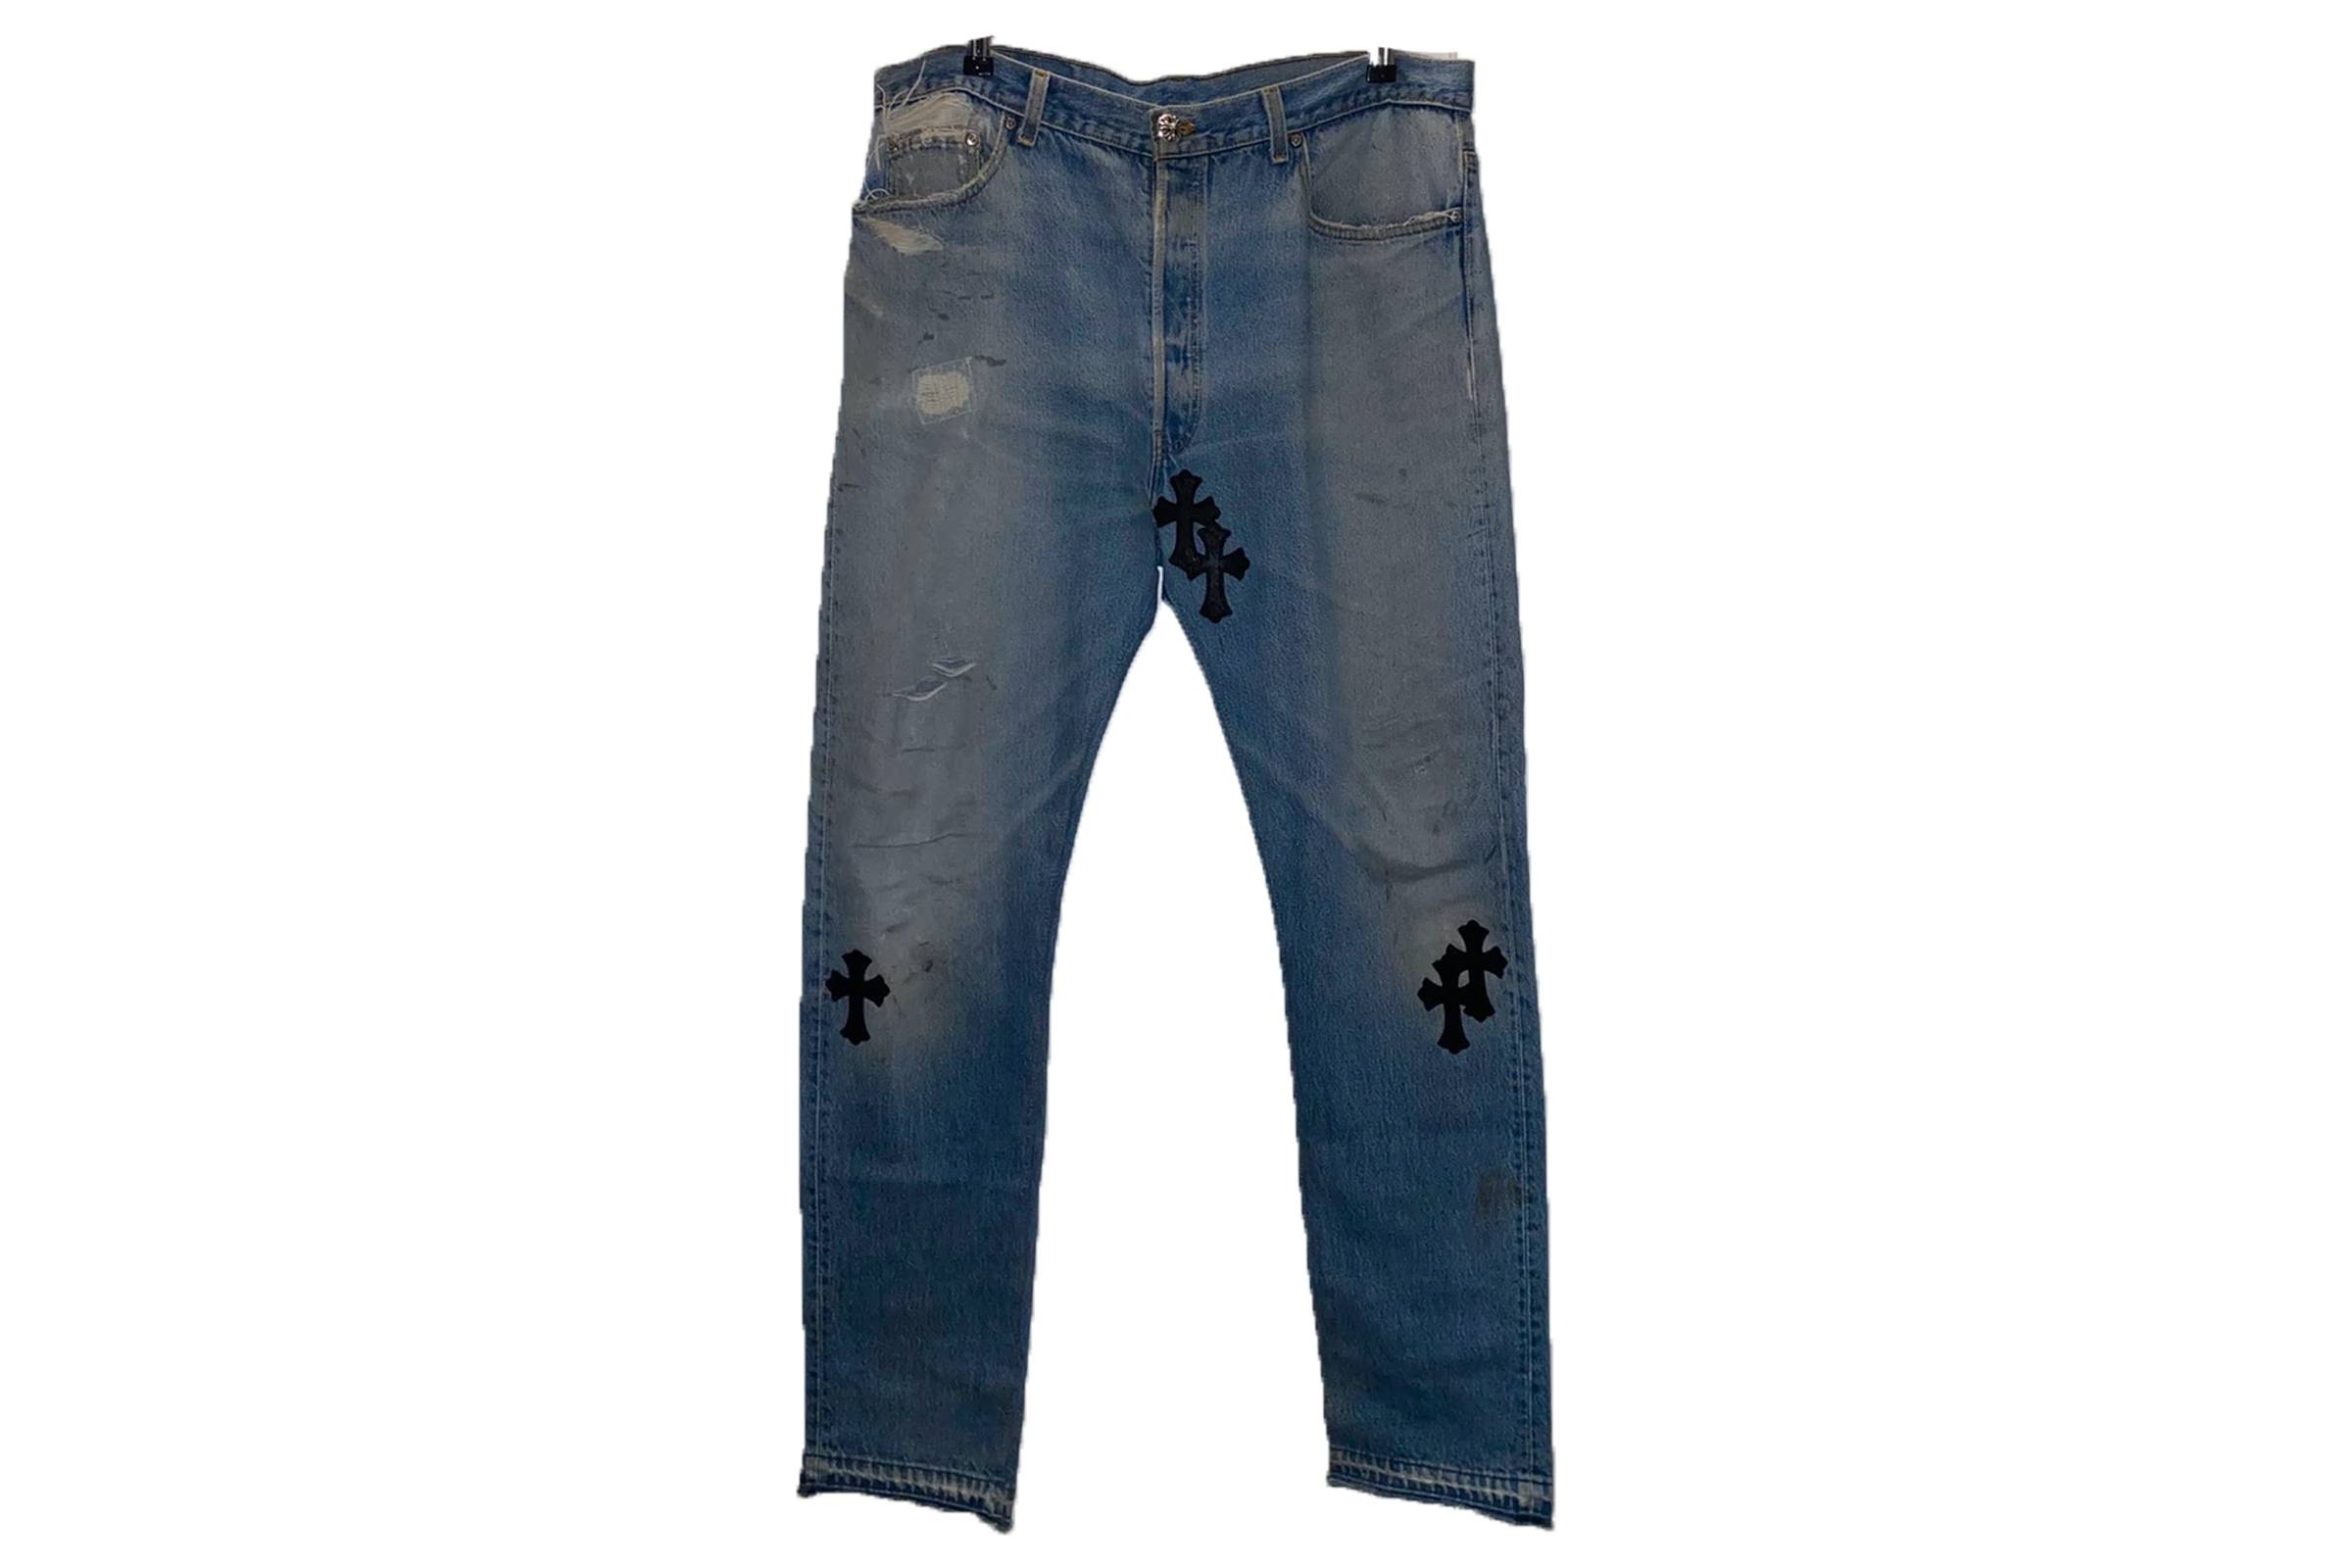 Chrome Hearts Leather Applique Jeans